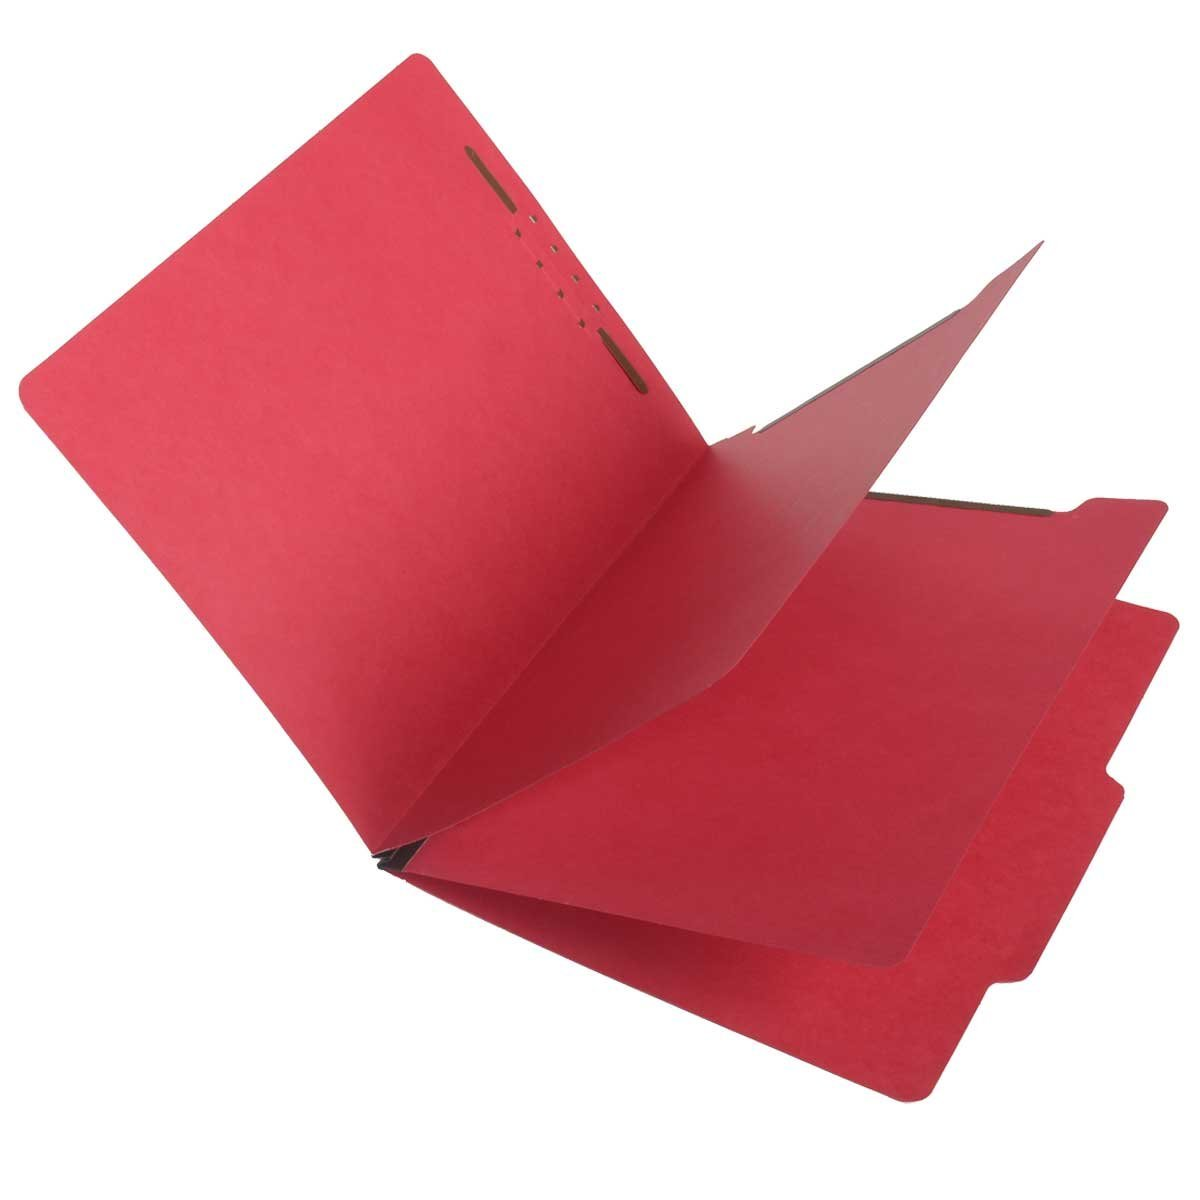 SJ Paper S59707 Match 15 Pt. Red Classification Folders, 2/5 Cut ROC Top Tab, Letter Size, 2 Dividers (Box of 25) by Ecom Folders